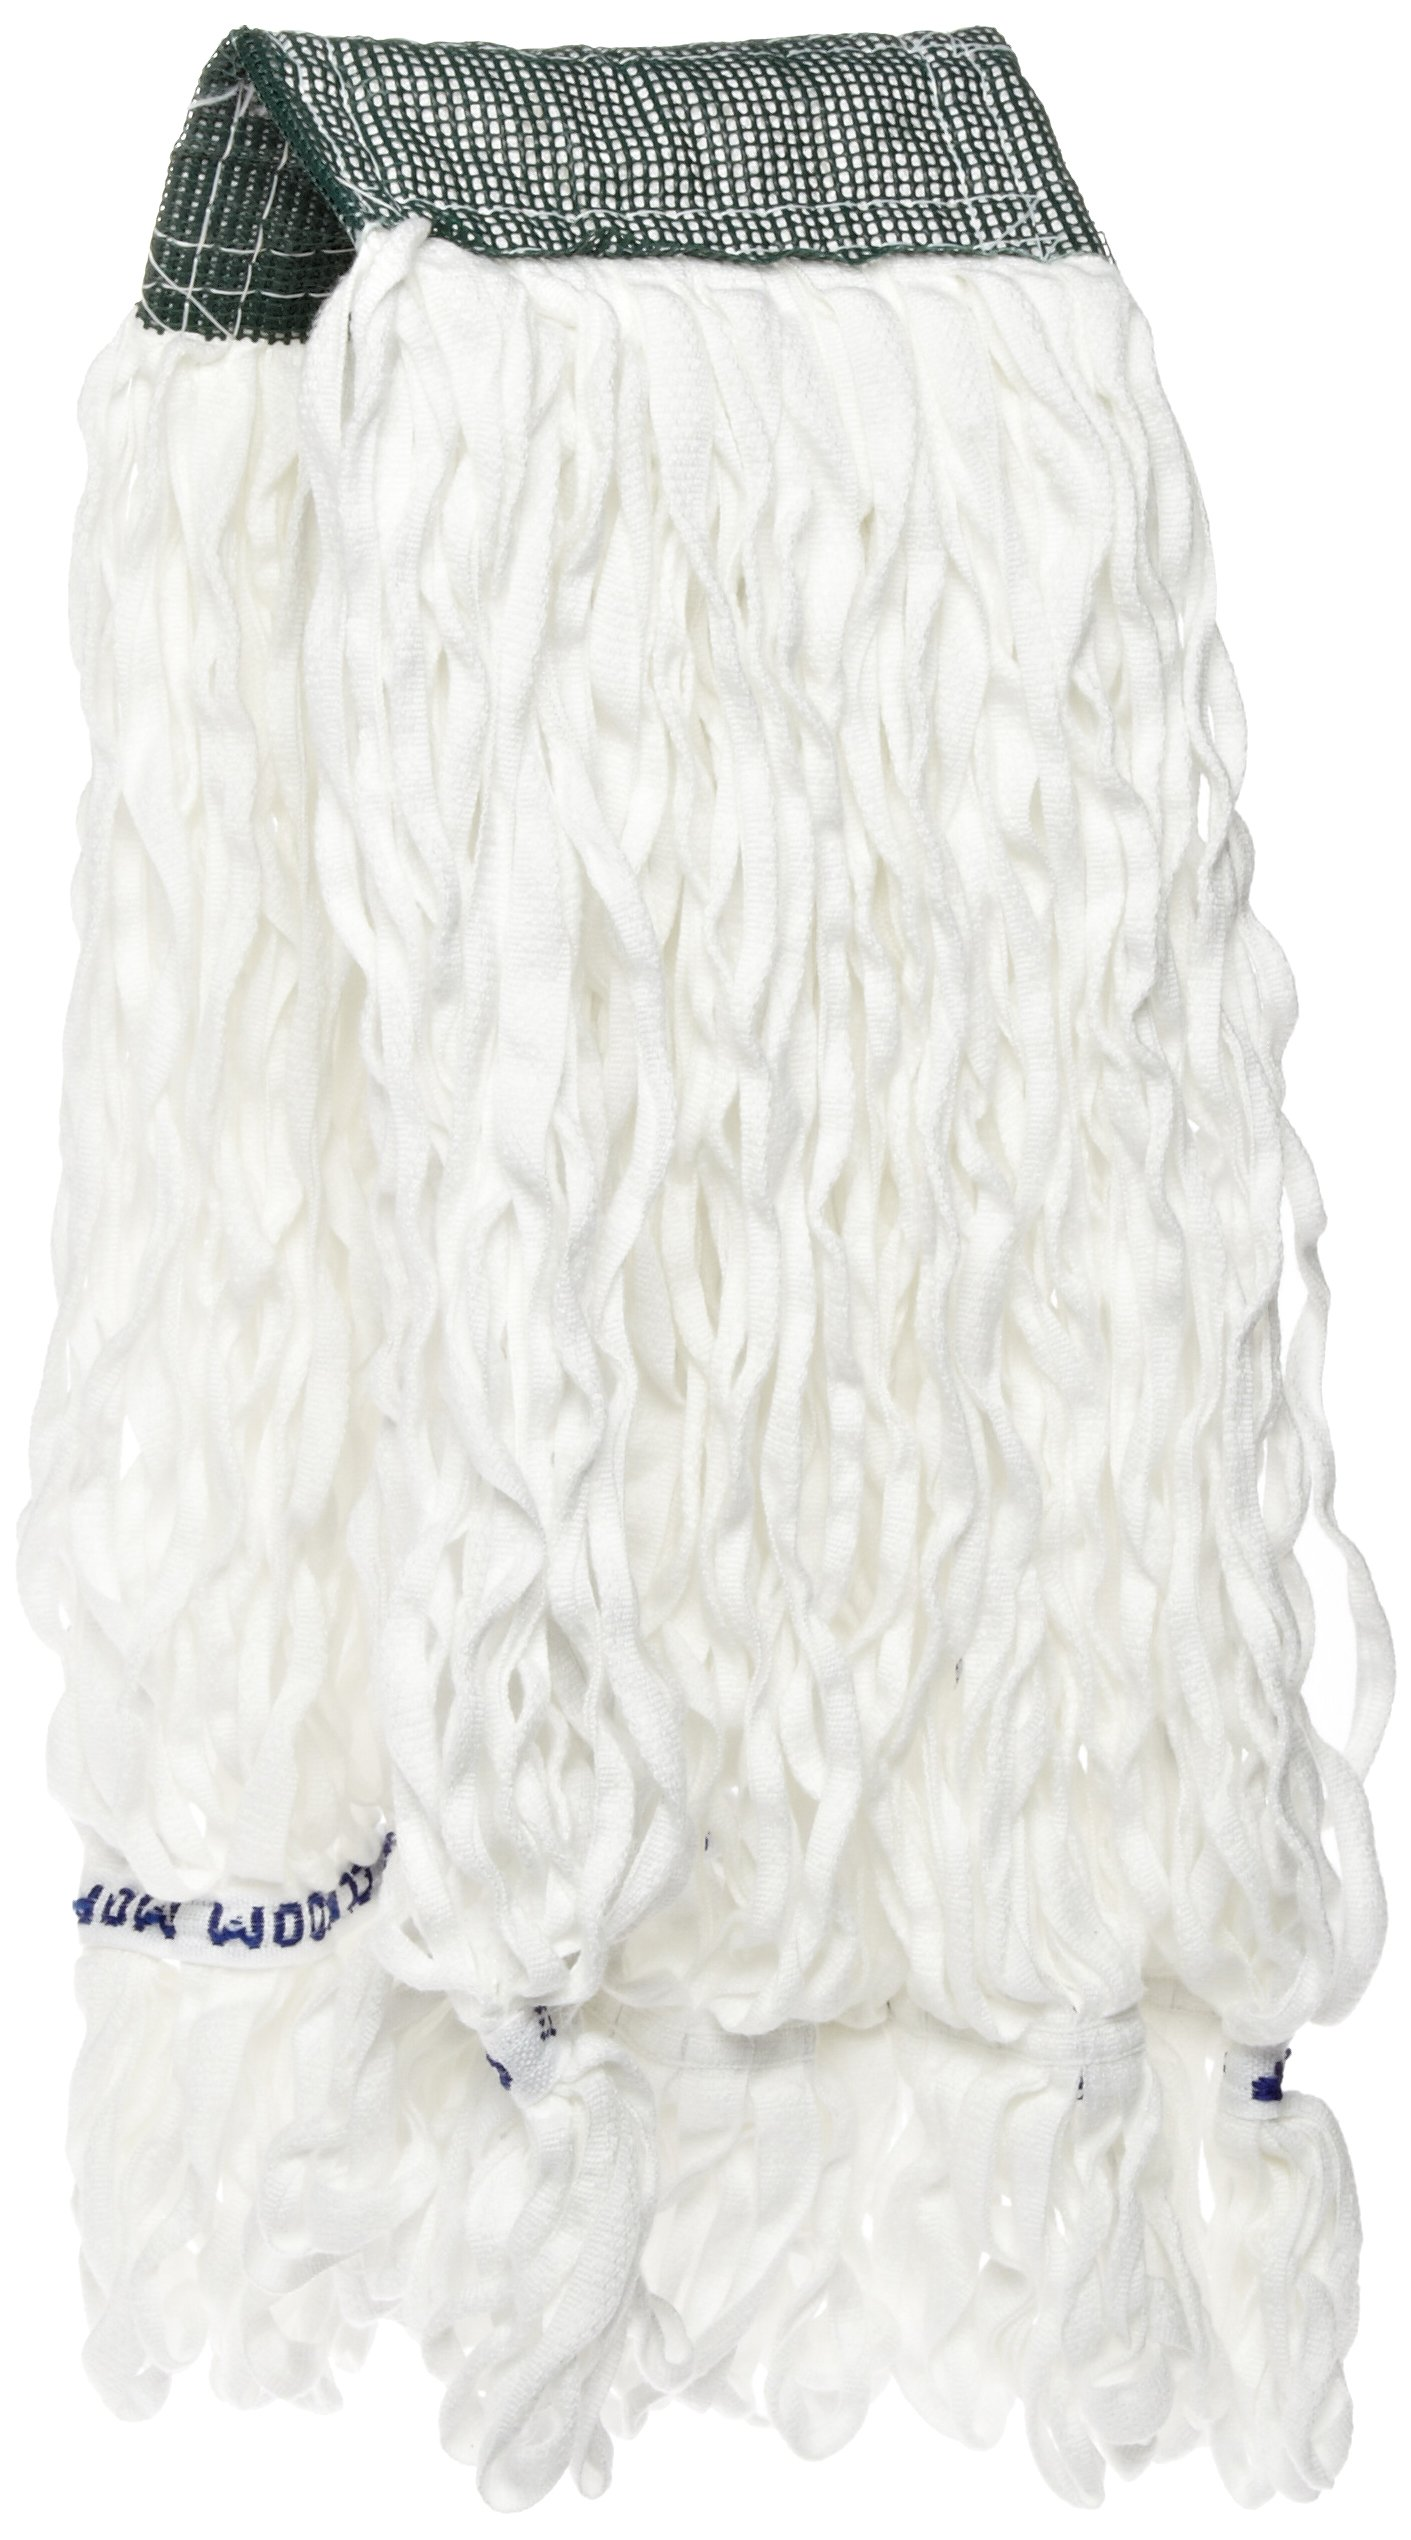 Rubbermaid Commercial 20 Oz Clean Room String Wet Mop Head, 5 Inch Headband, White (FGT30000WH00)